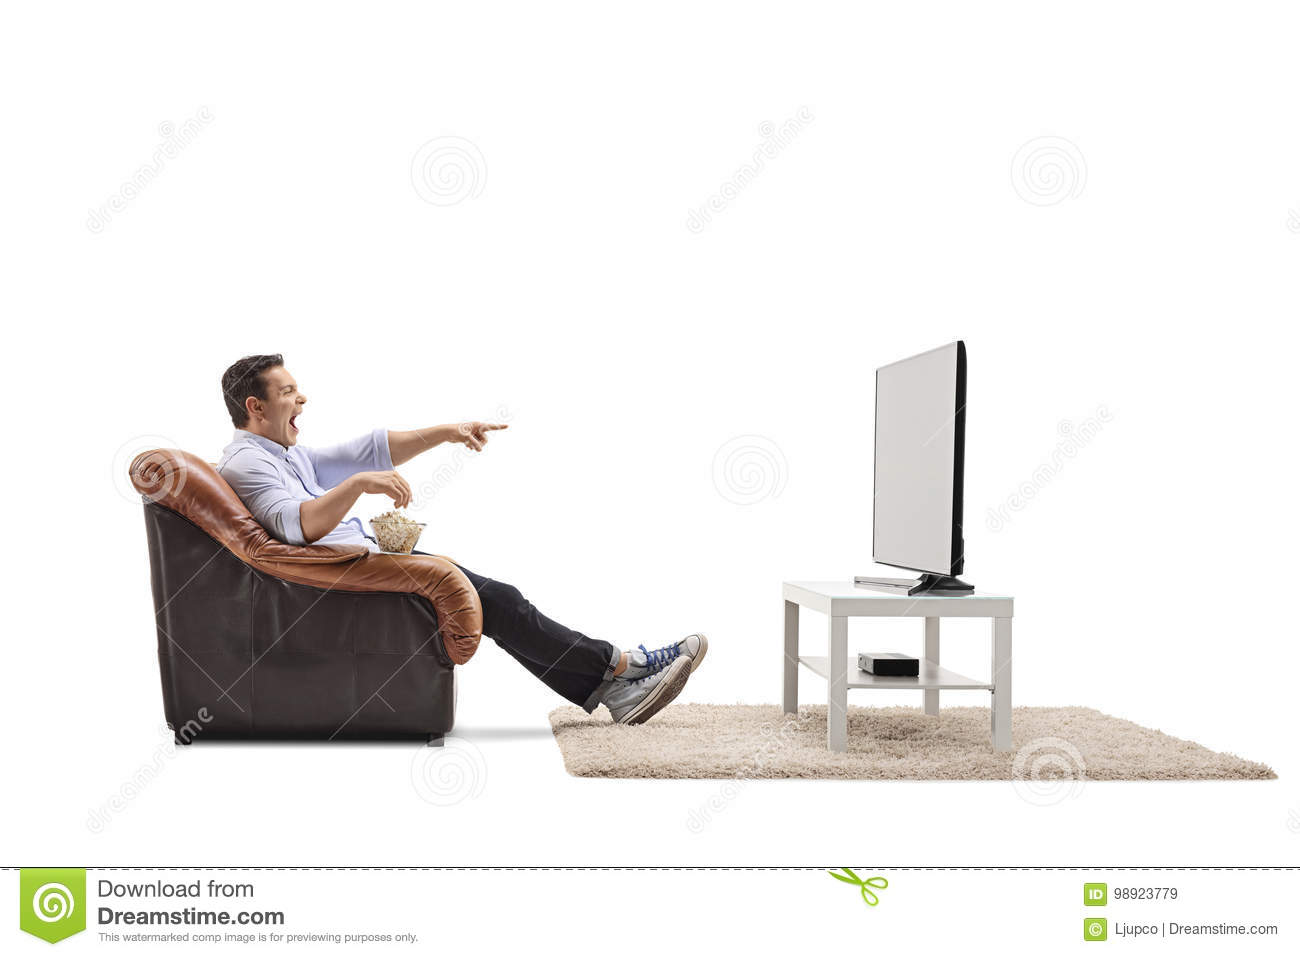 Young man seated in an armchair watching television and laughing